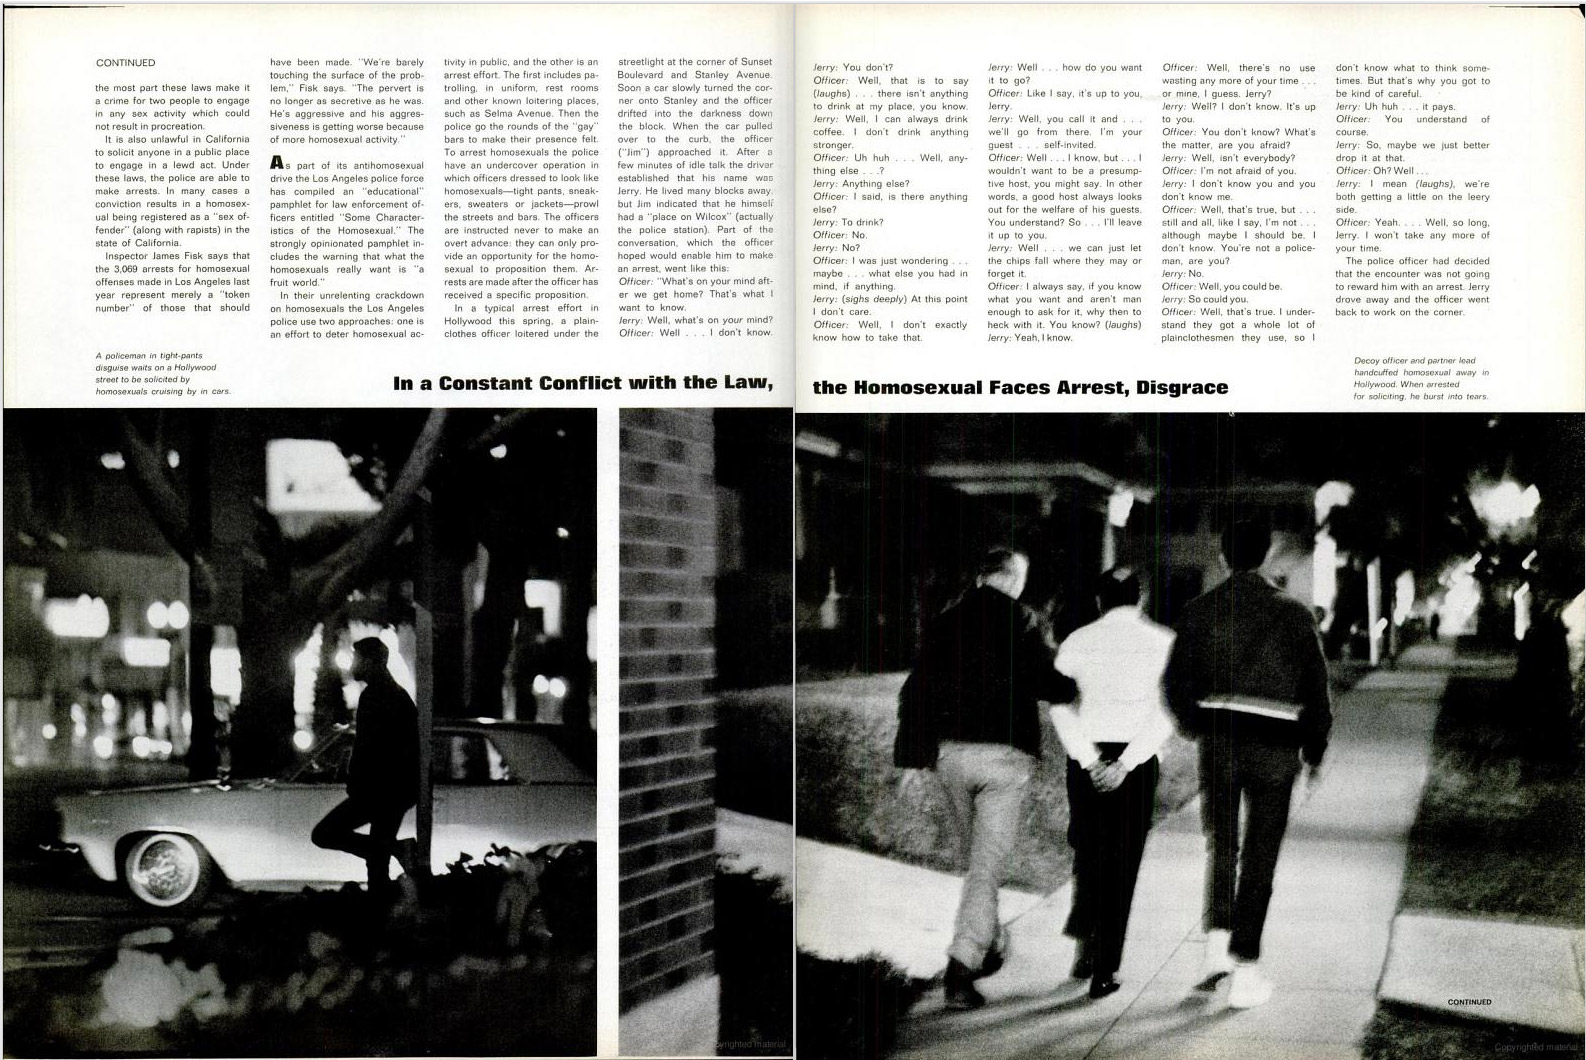 "June 26, 1964 issue of LIFE magazine. Captions read: ""A police officer in tight-pants disguise waits on a Hollywood street to be solicited by homosexuals cruising by in cars. Decoy officer and partner lead handcuffed homosexual away in Hollywood. When arrested for soliciting, he burst into tears."""